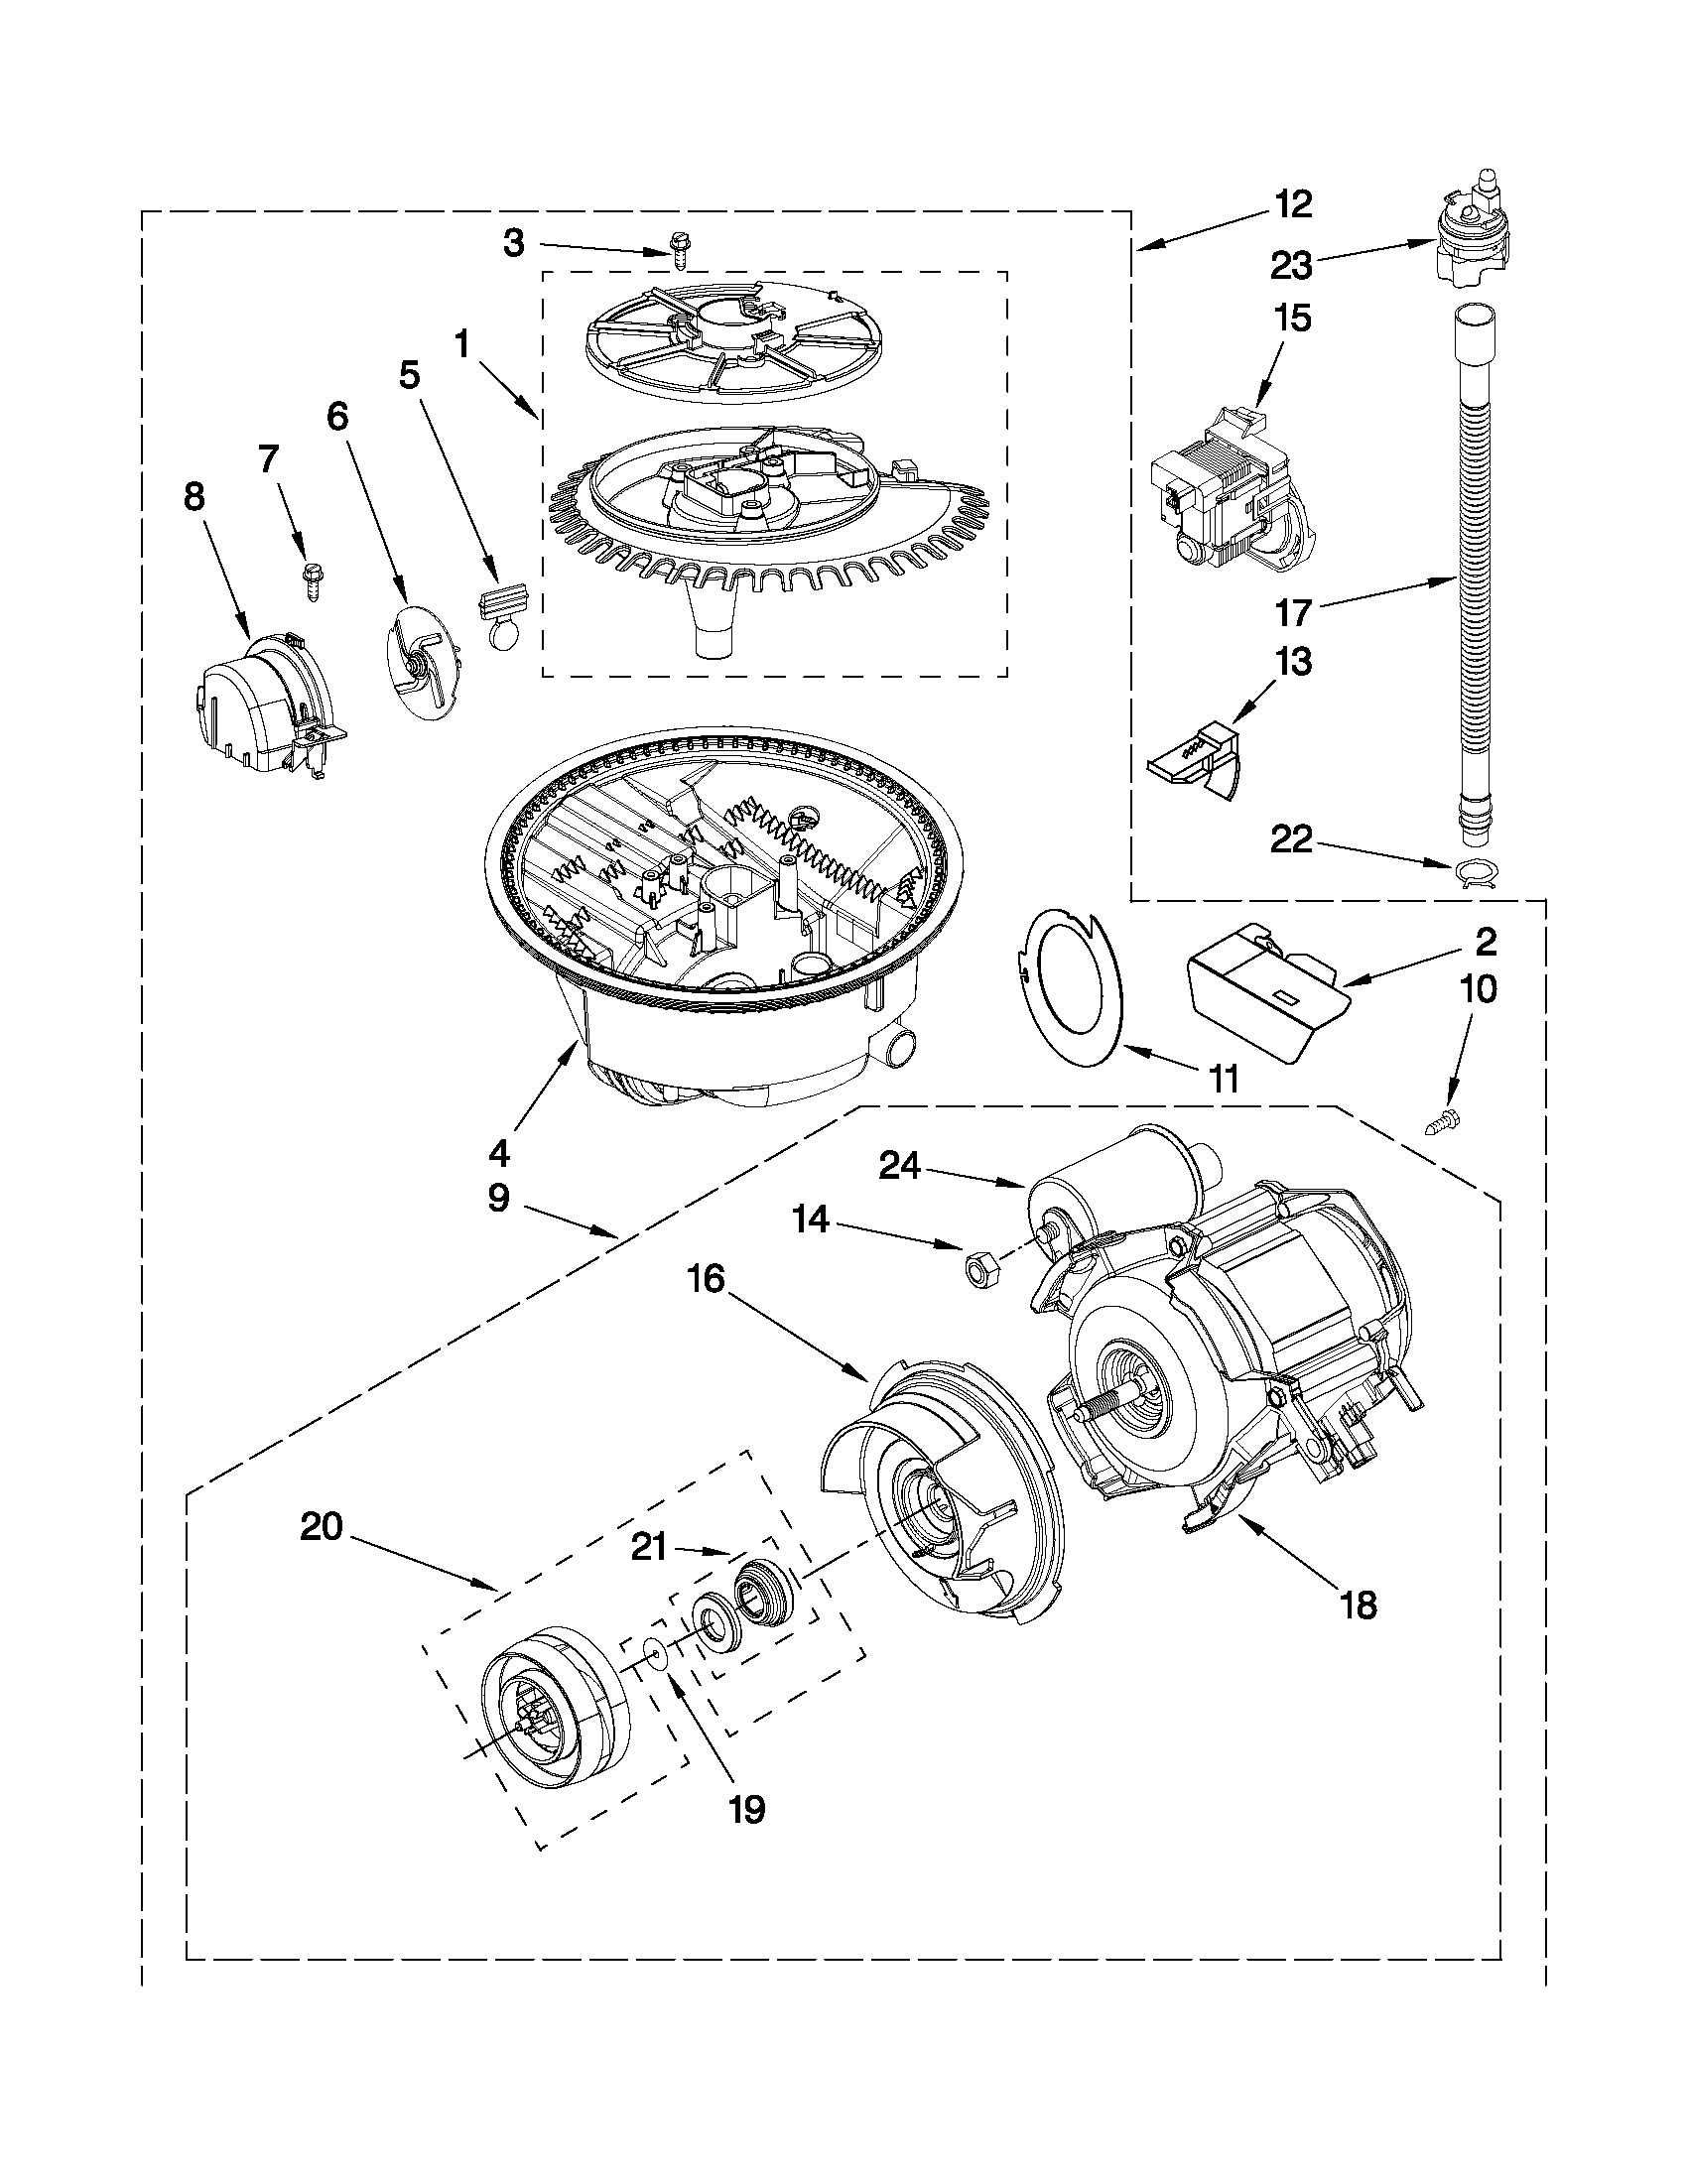 Kitchenaid quiet scrub dishwasher manual